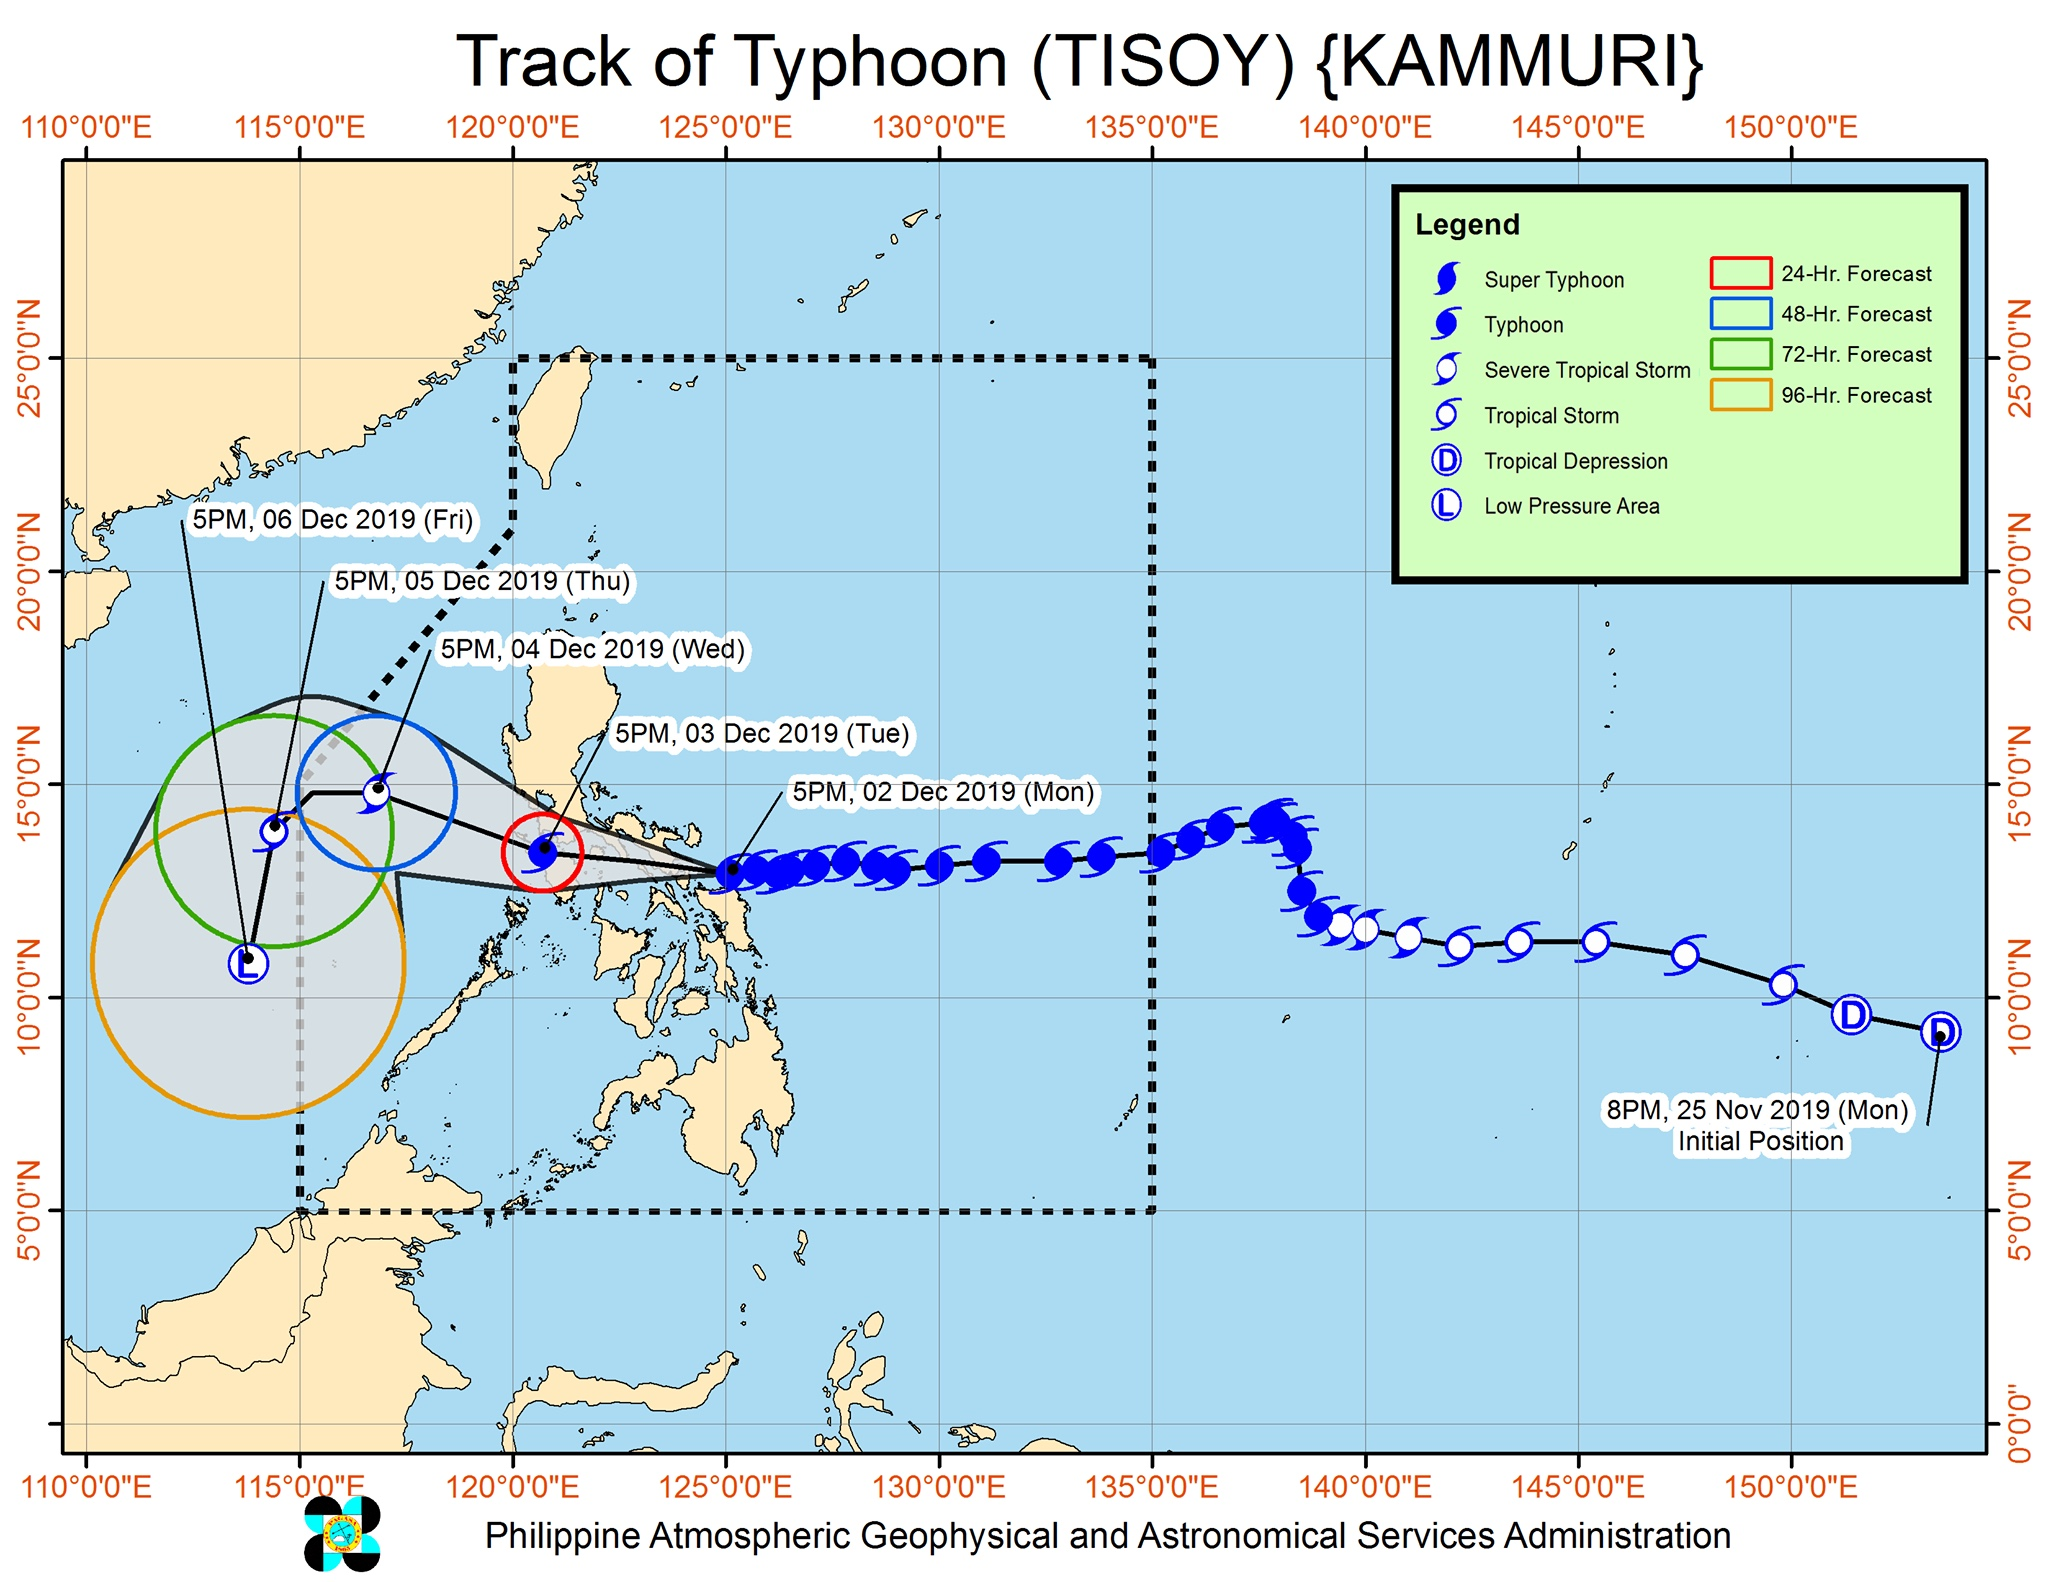 Forecast track of Typhoon Tisoy (Kammuri) as of December 2, 2019, 8 pm. Image from PAGASA